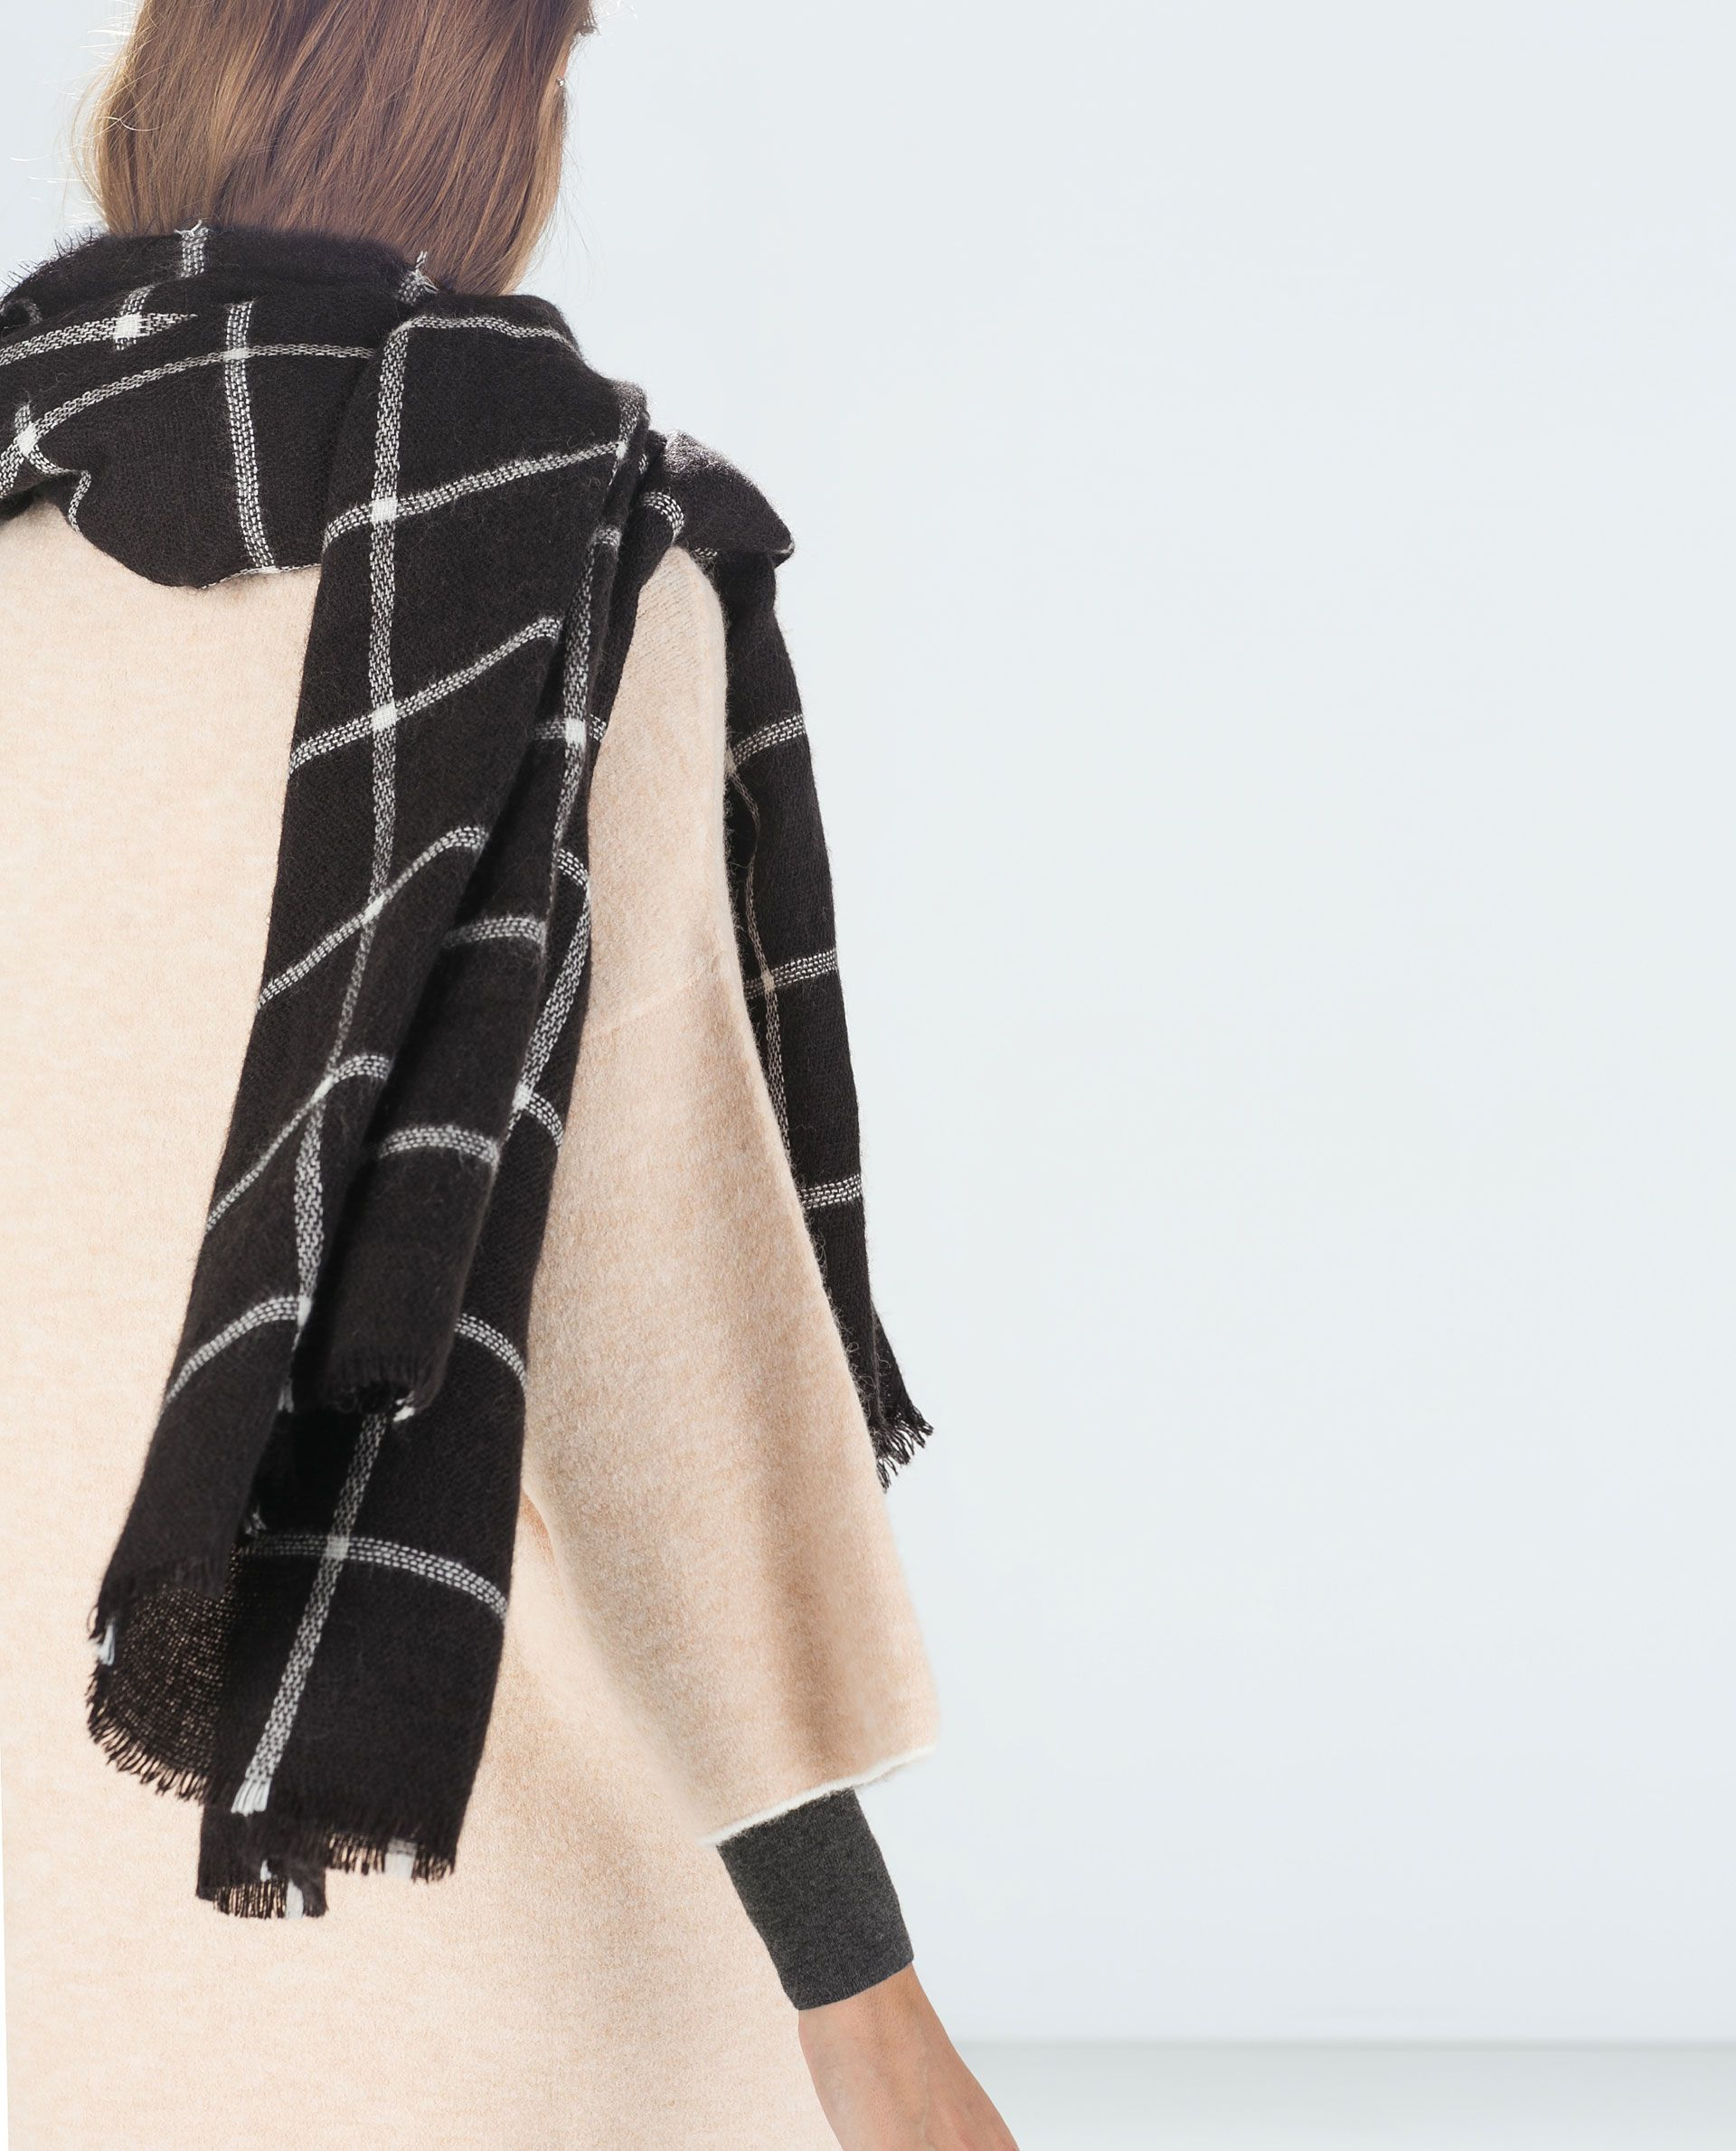 dde49f745bac Image 2 of CHECKED SCARF from Zara   I love, I want, I must have ...